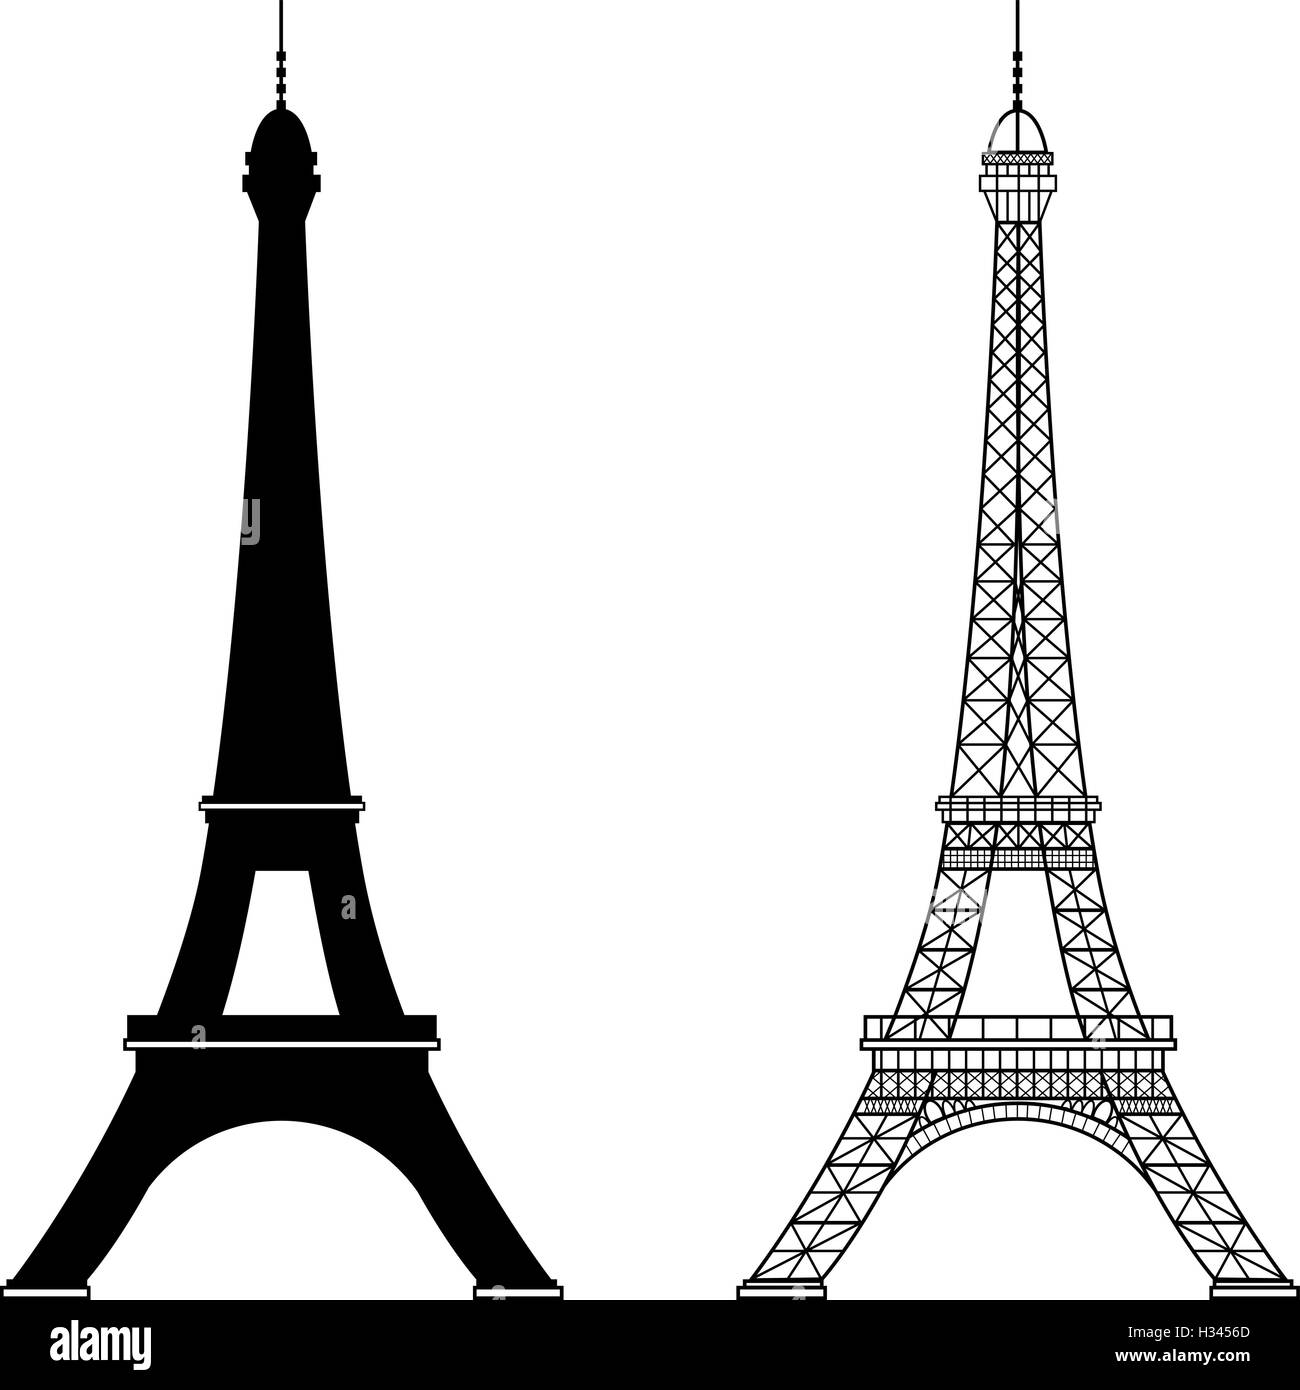 Eiffel tower construction black and white stock photos images alamy eiffel tower isolated vector illustration stock image thecheapjerseys Gallery